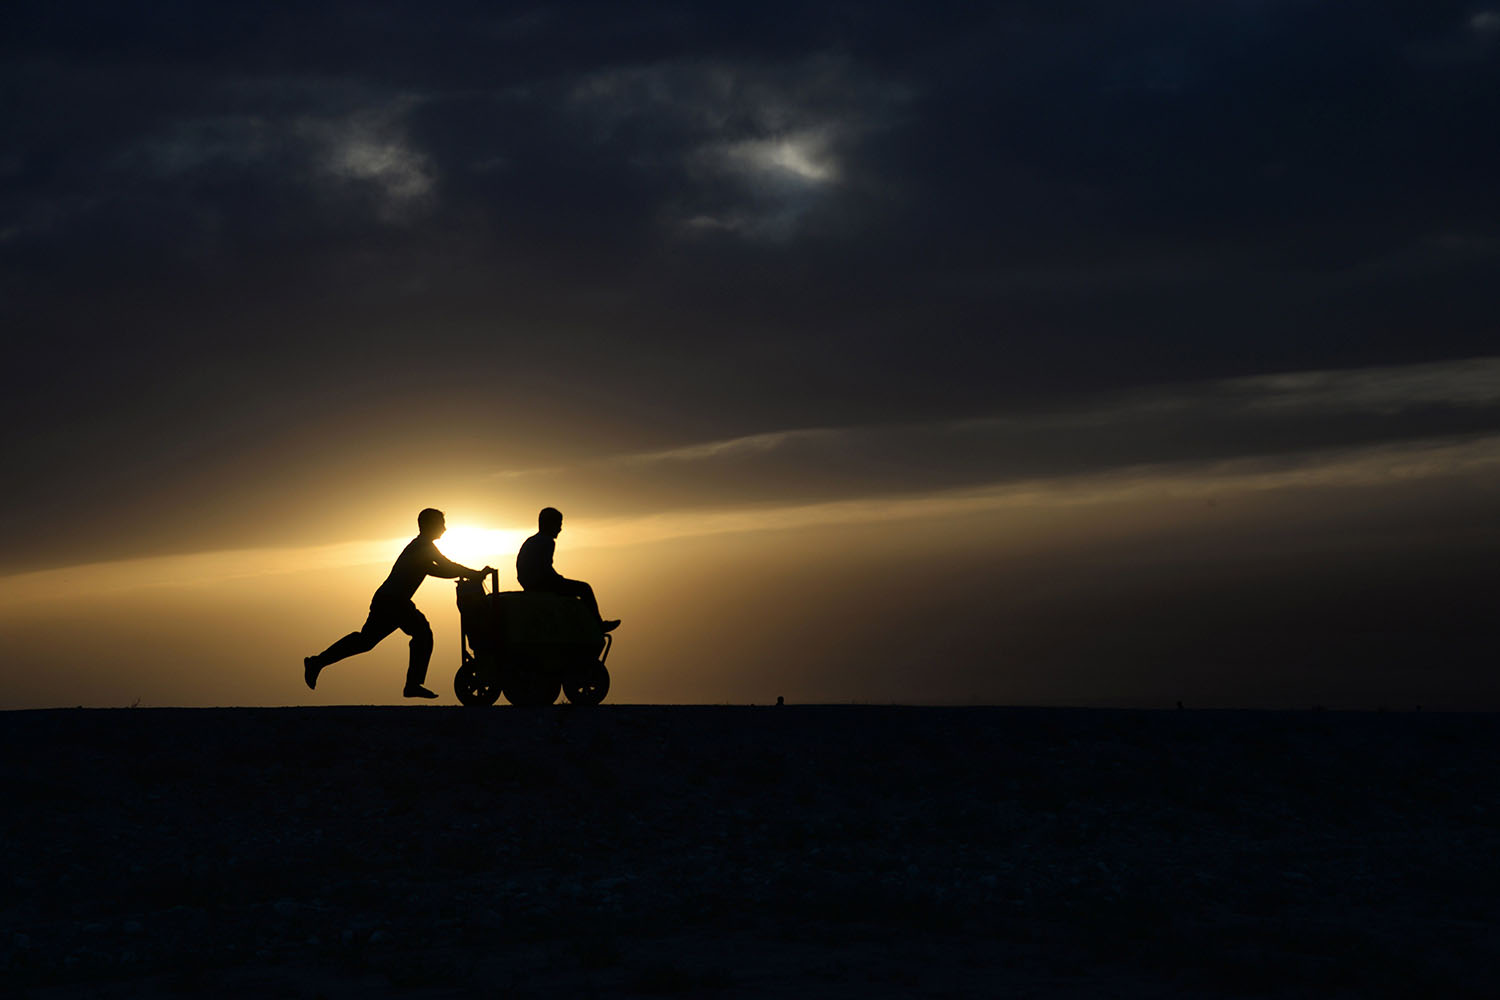 An Afghan youth pushes a friend on a ice-cream cart as the sun sets on the outskirts of Mazar Sharif on May 16, 2014.